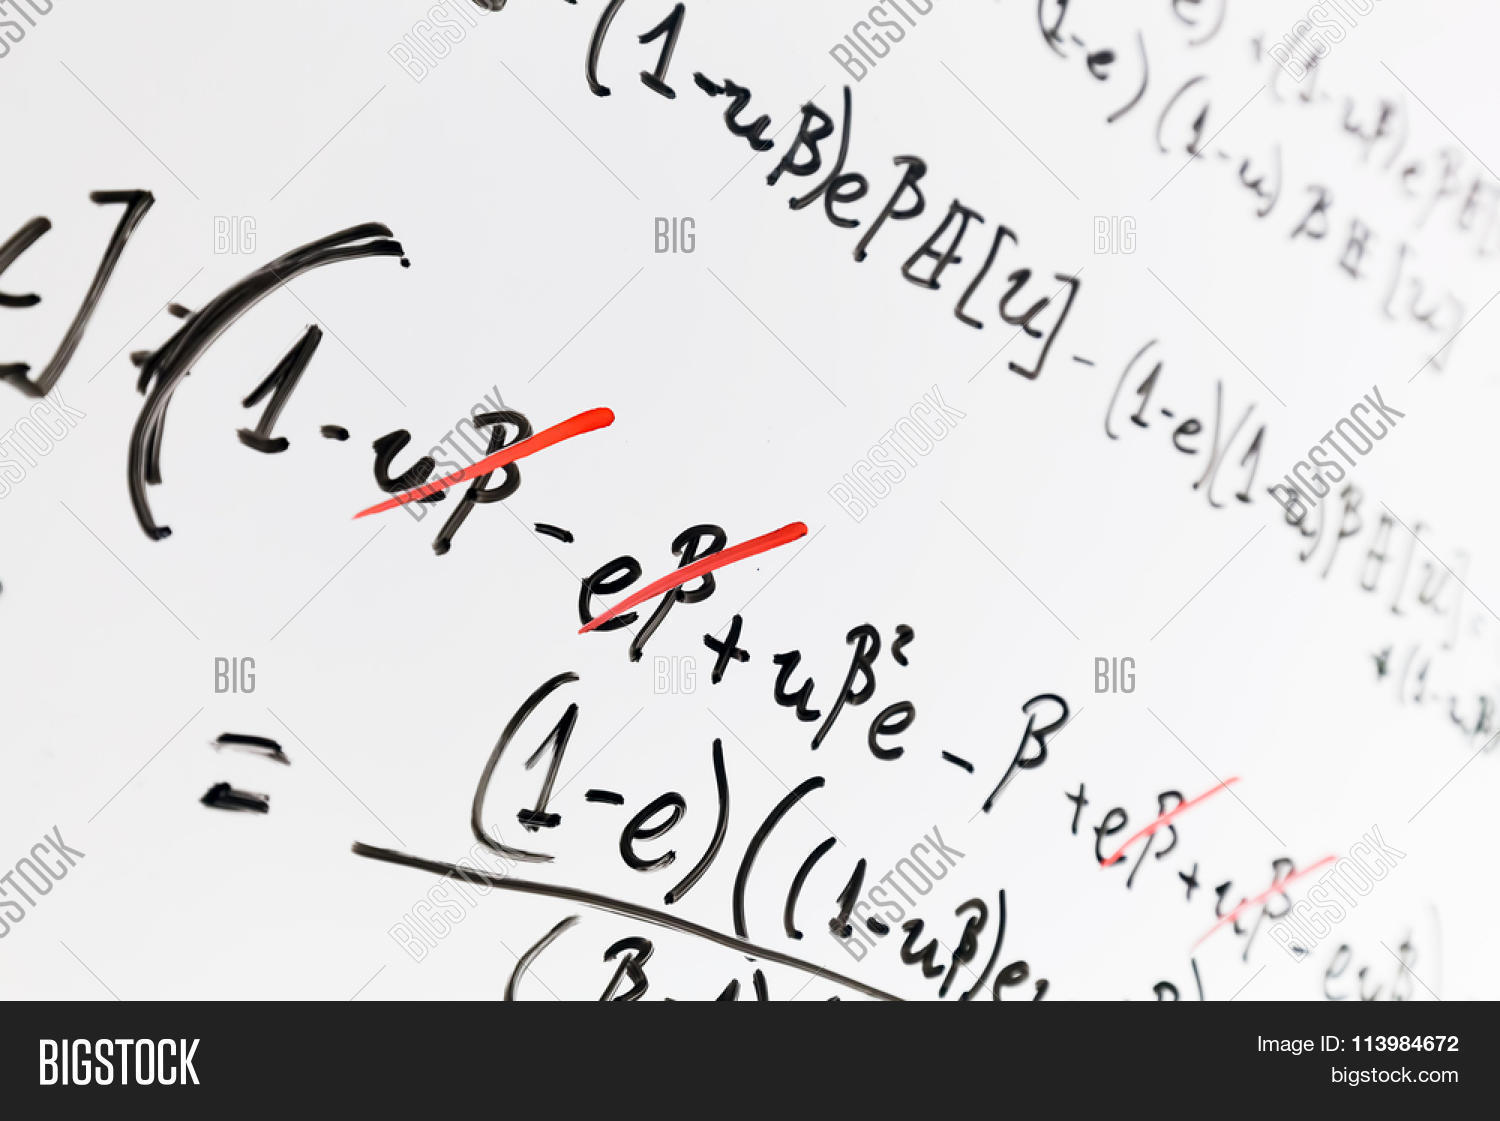 Complex math formulas on whiteboard image photo bigstock complex math formulas on whiteboard mathematics and science with economics concept real equations buycottarizona Images